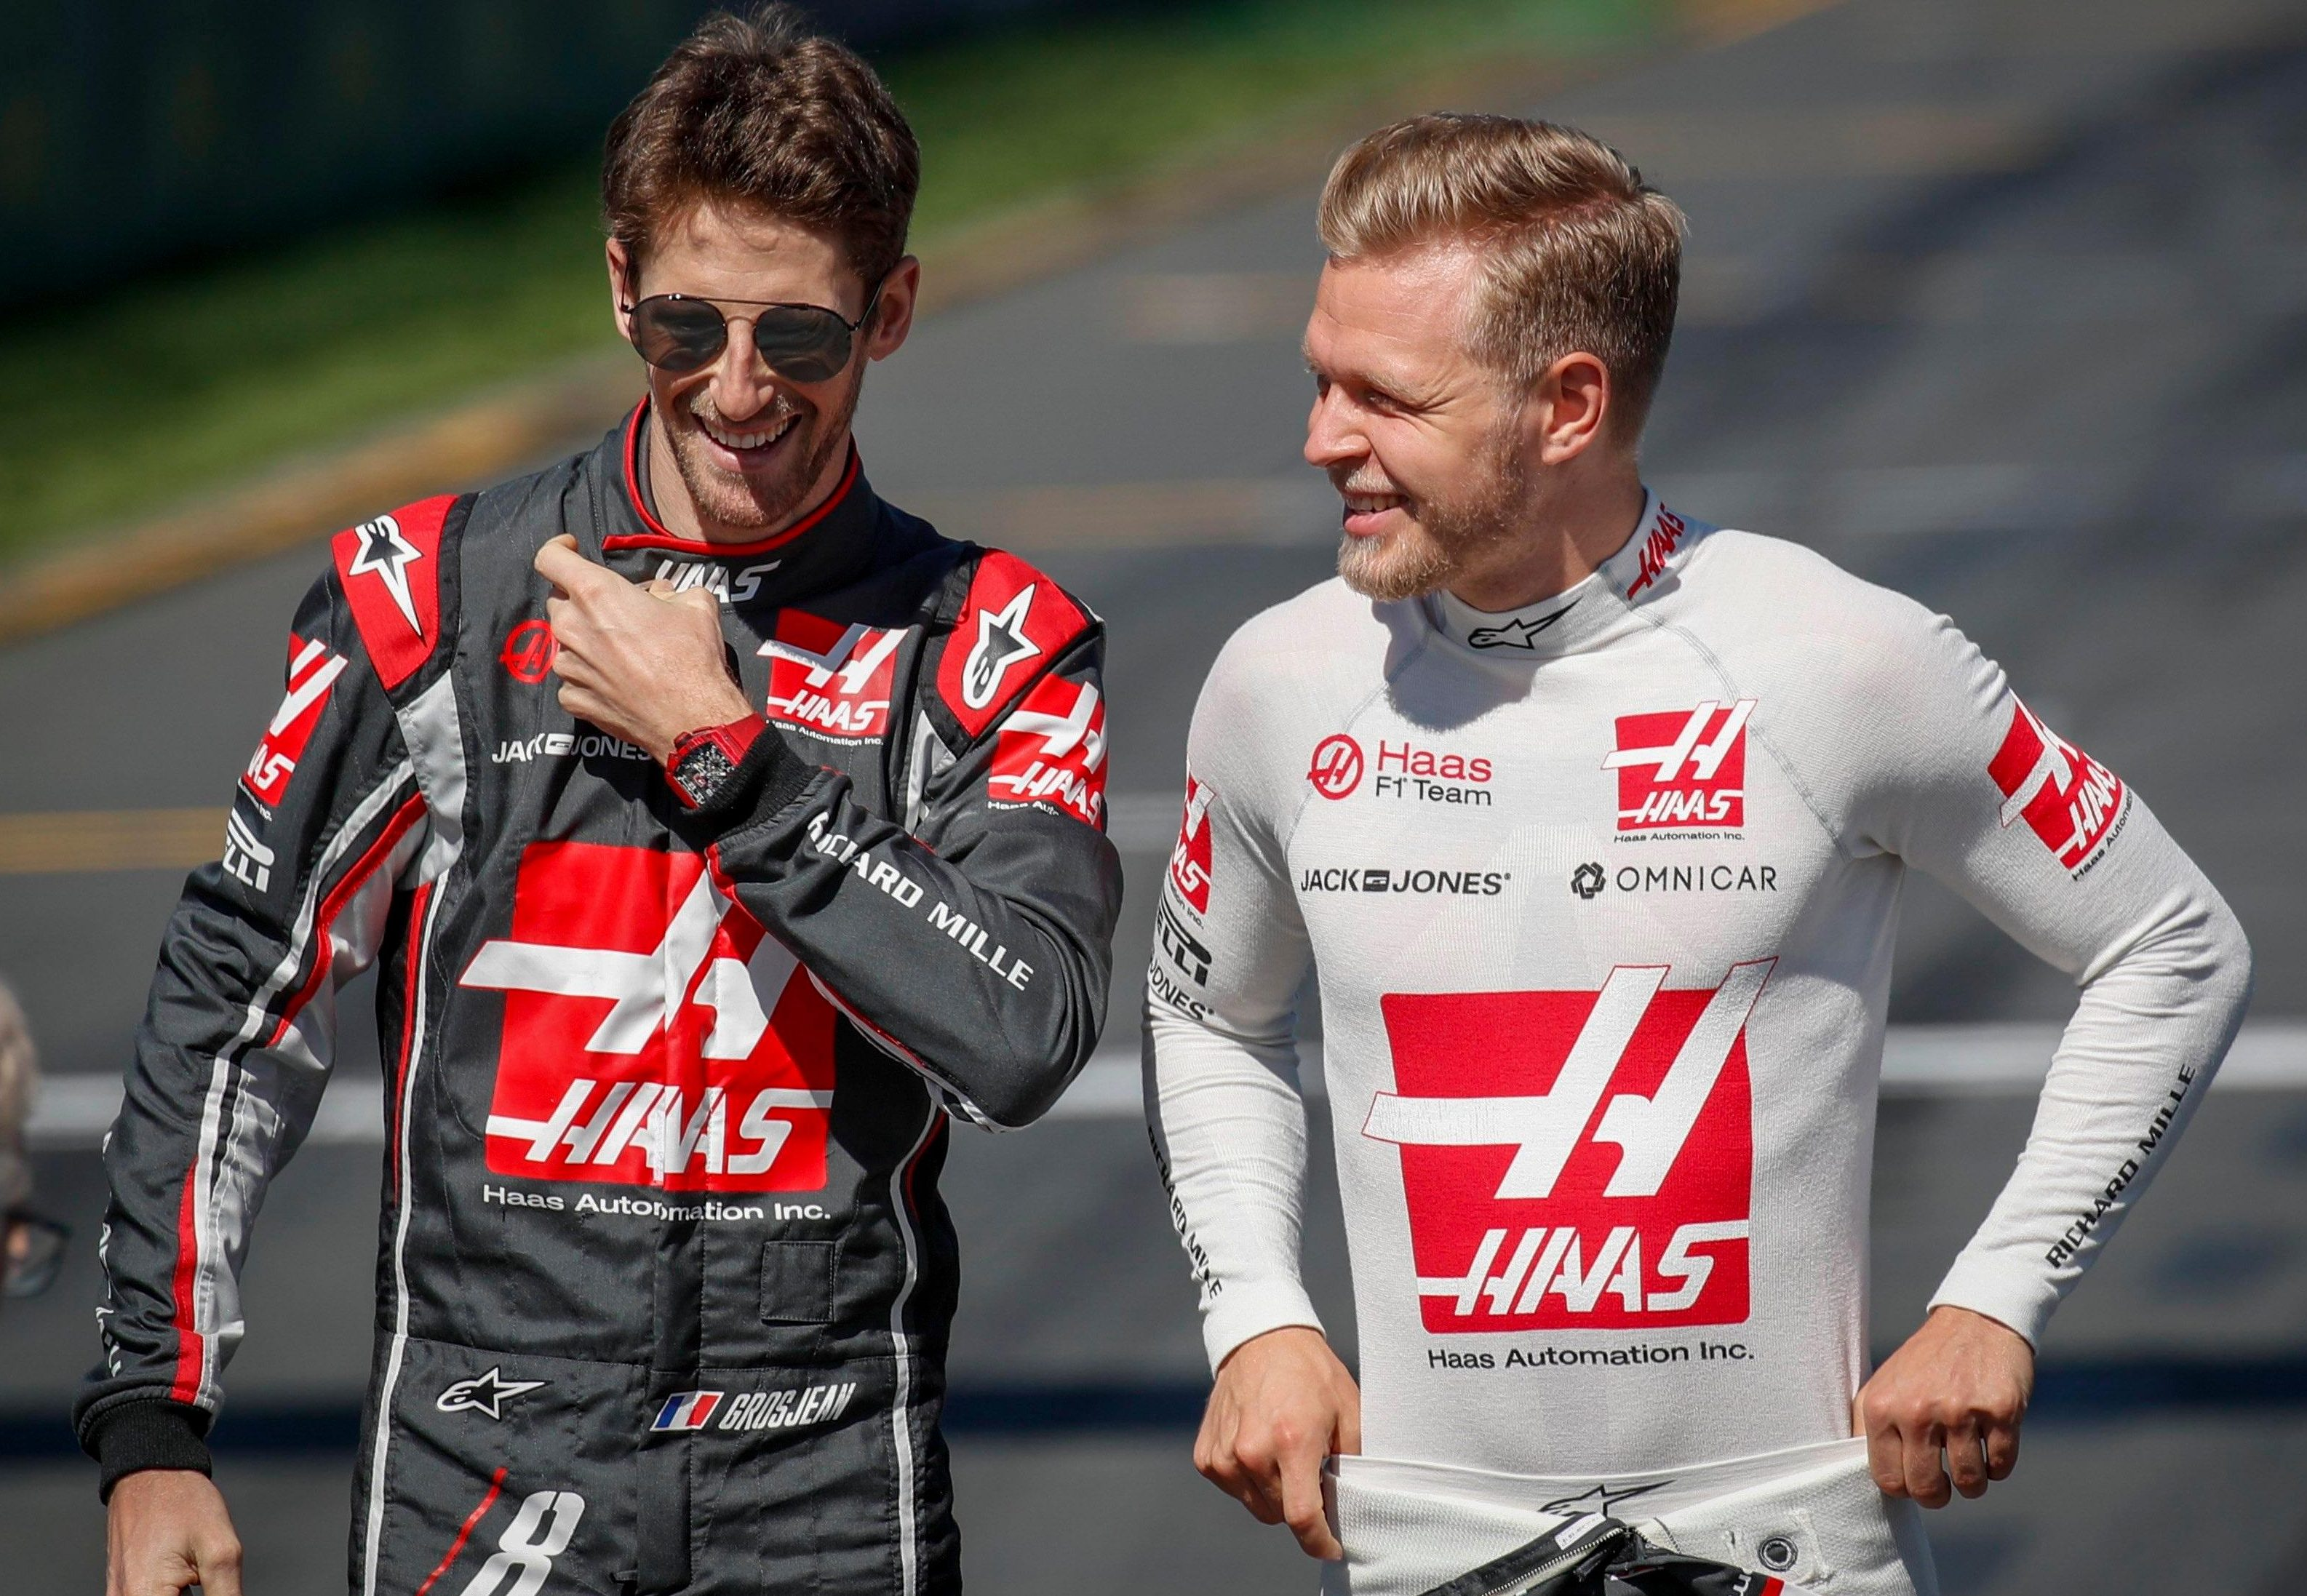 Rivals are sceptical about the progress of Haas drivers Kevin Magnussen and Romain Grosjean this season